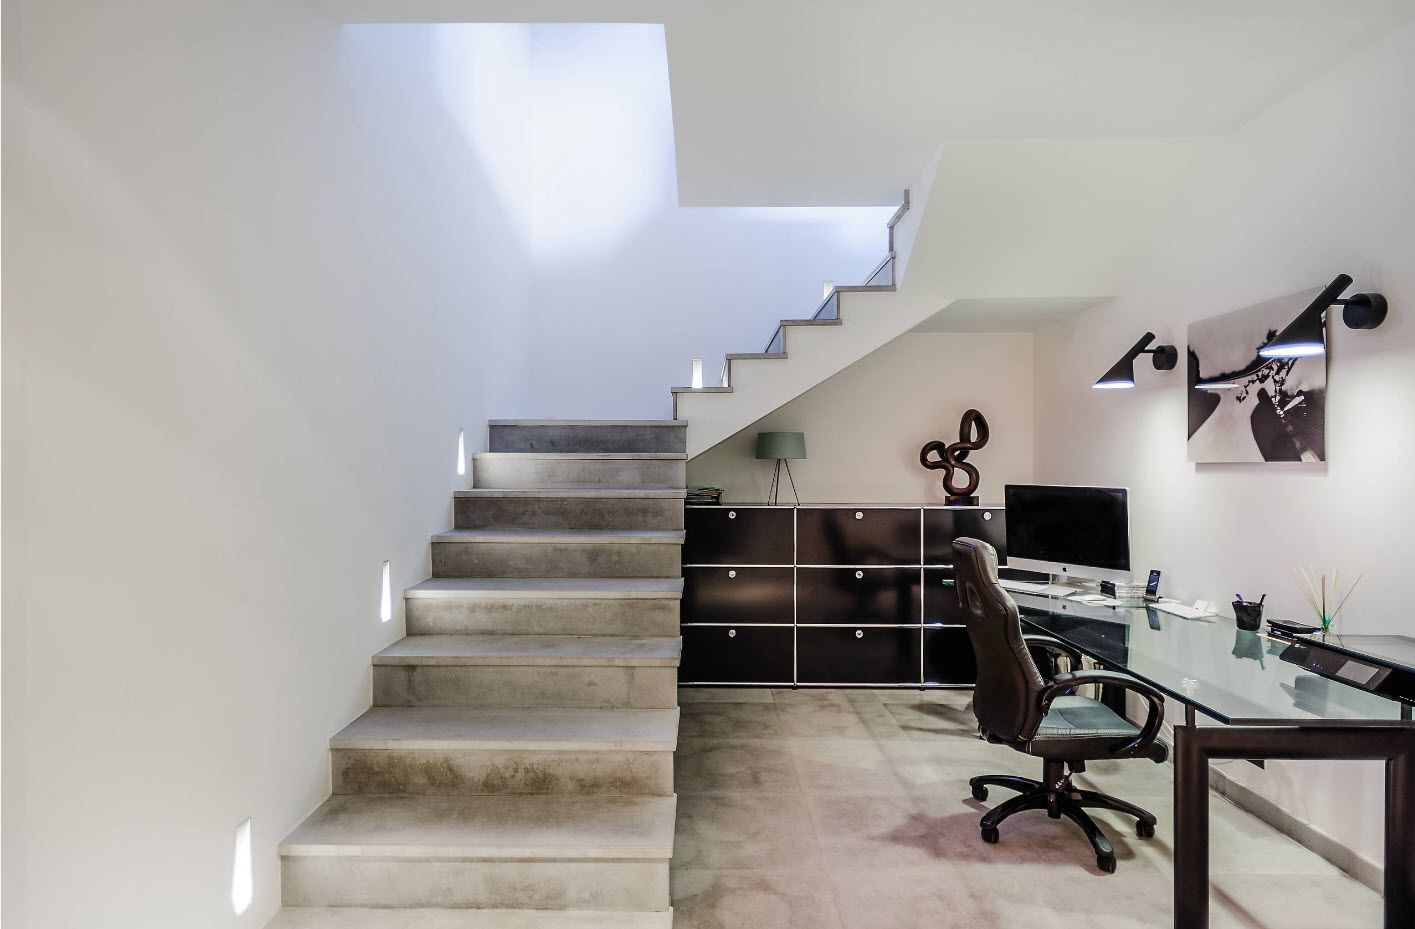 Top 100 Modern Home Office Design Trends 2017. Open layout stairs and working space at the lower floor